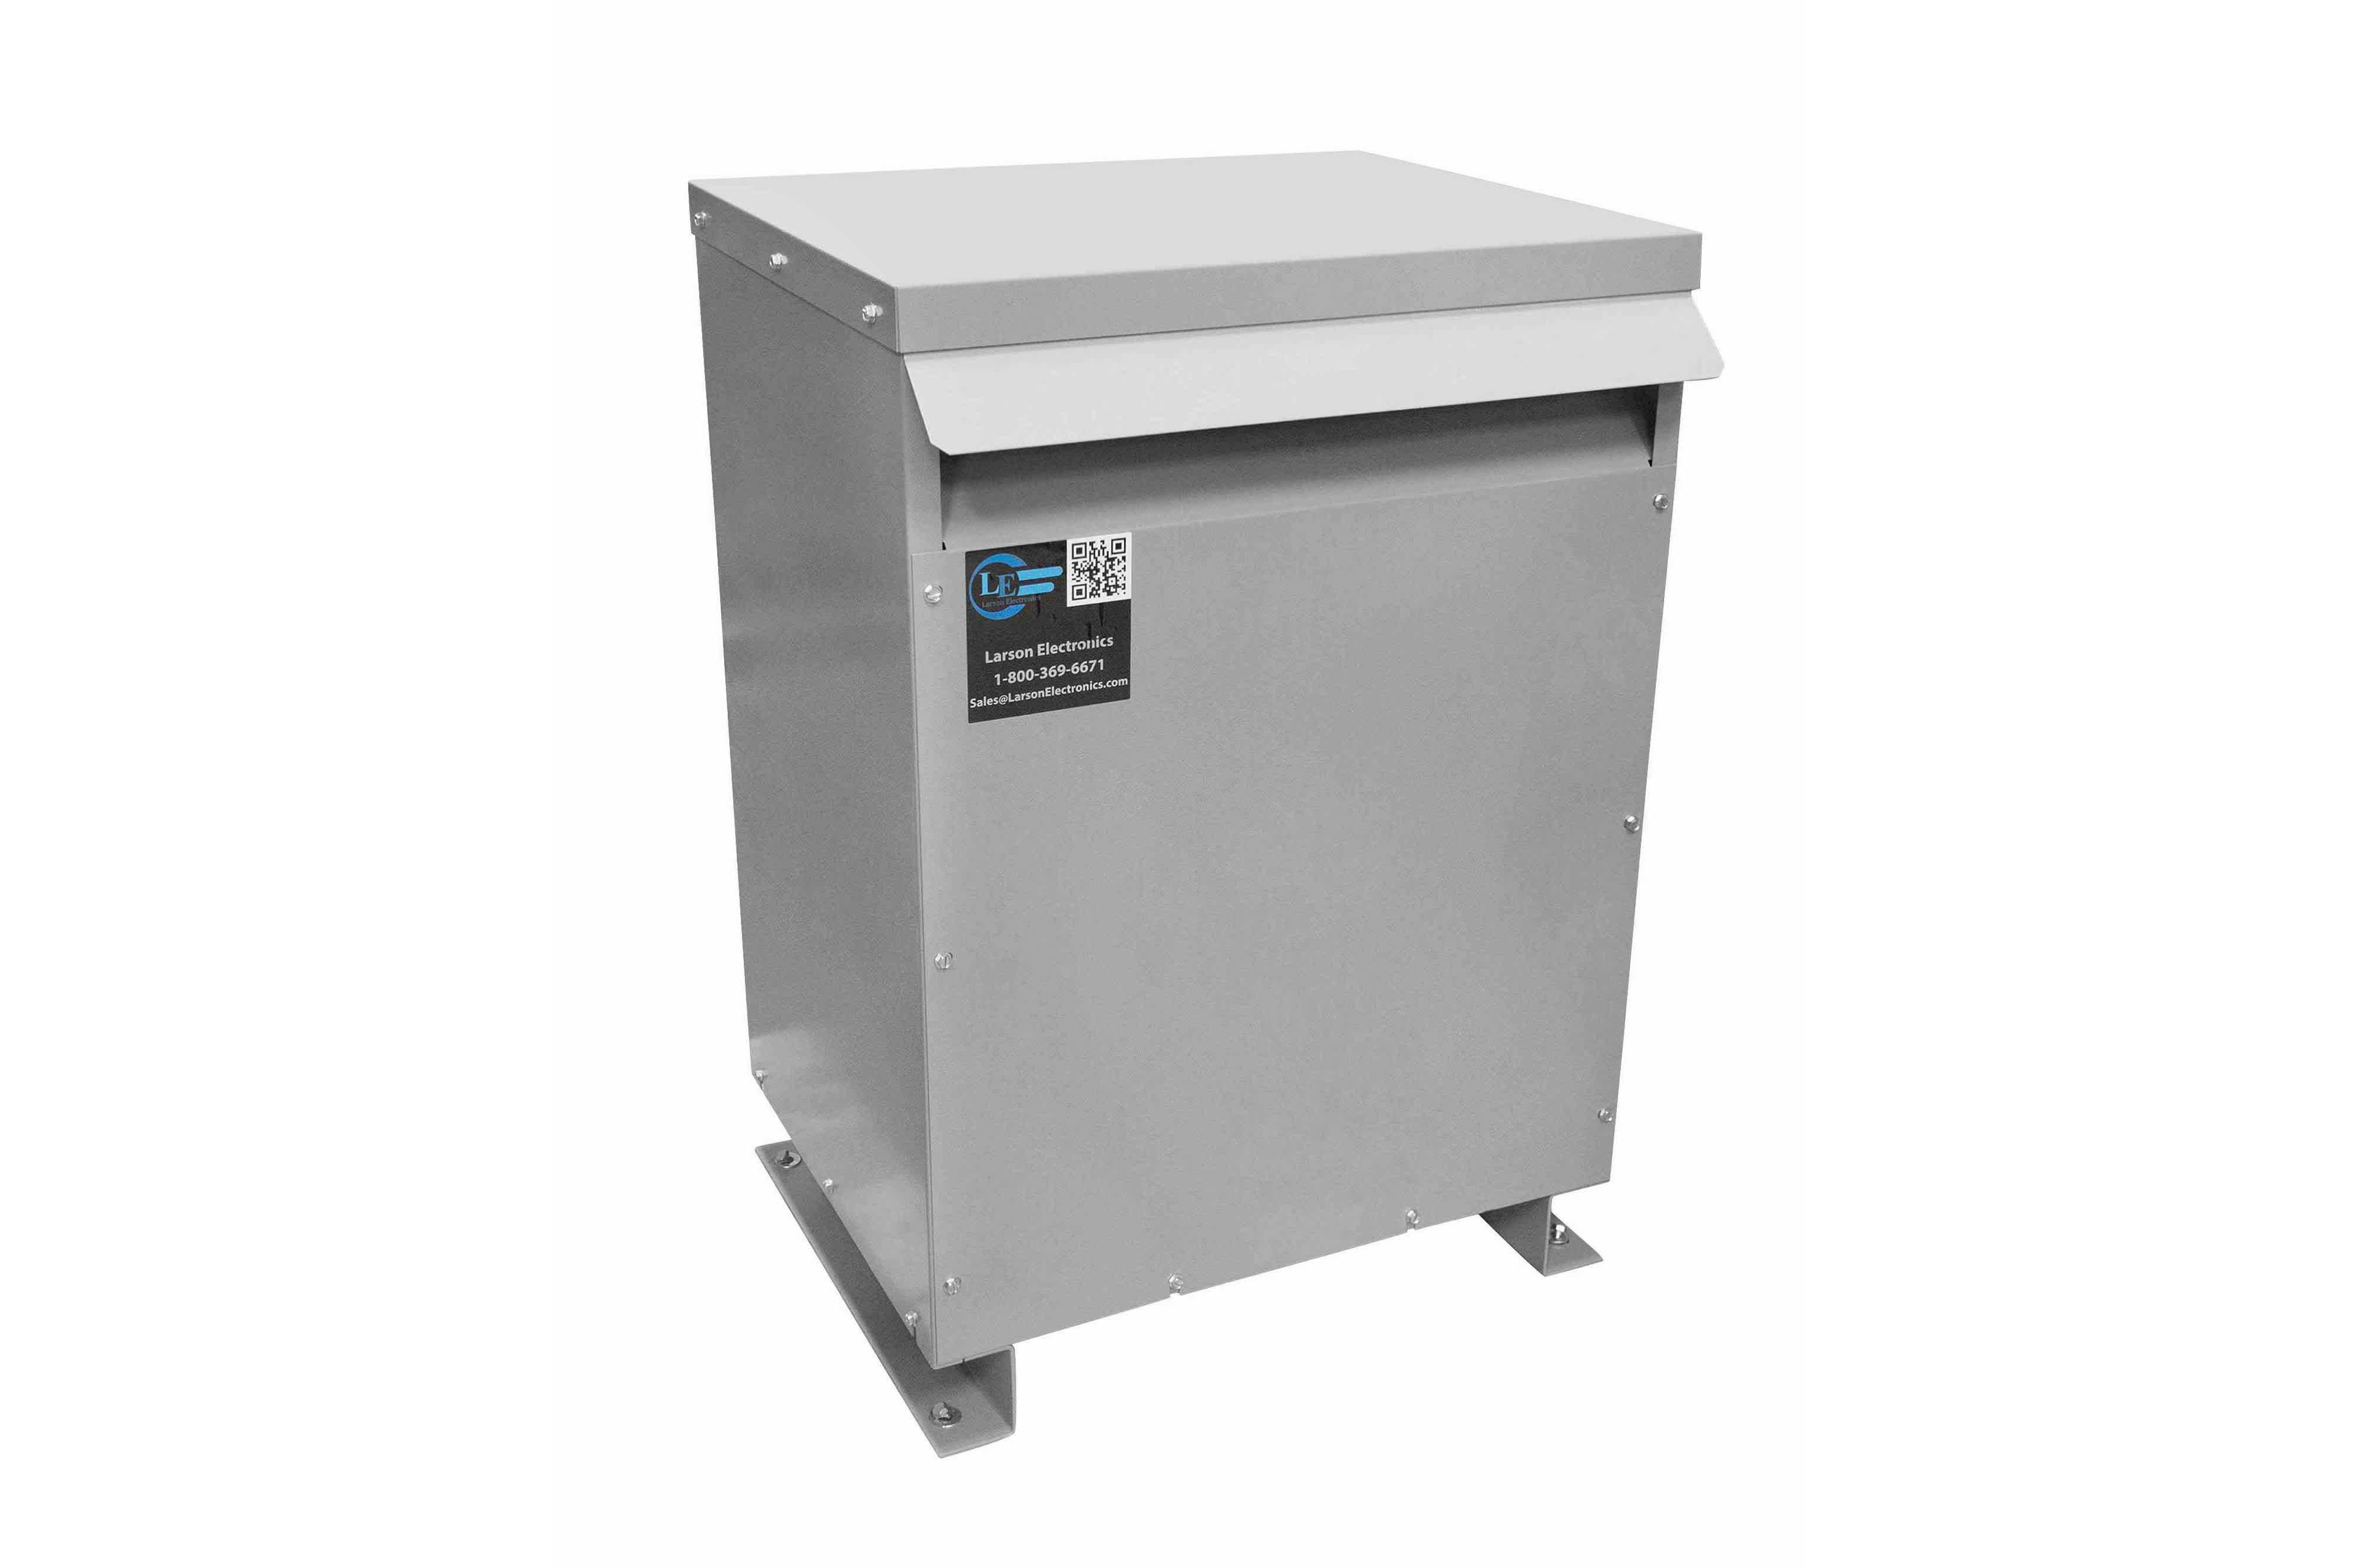 15 kVA 3PH Isolation Transformer, 480V Wye Primary, 600Y/347 Wye-N Secondary, N3R, Ventilated, 60 Hz